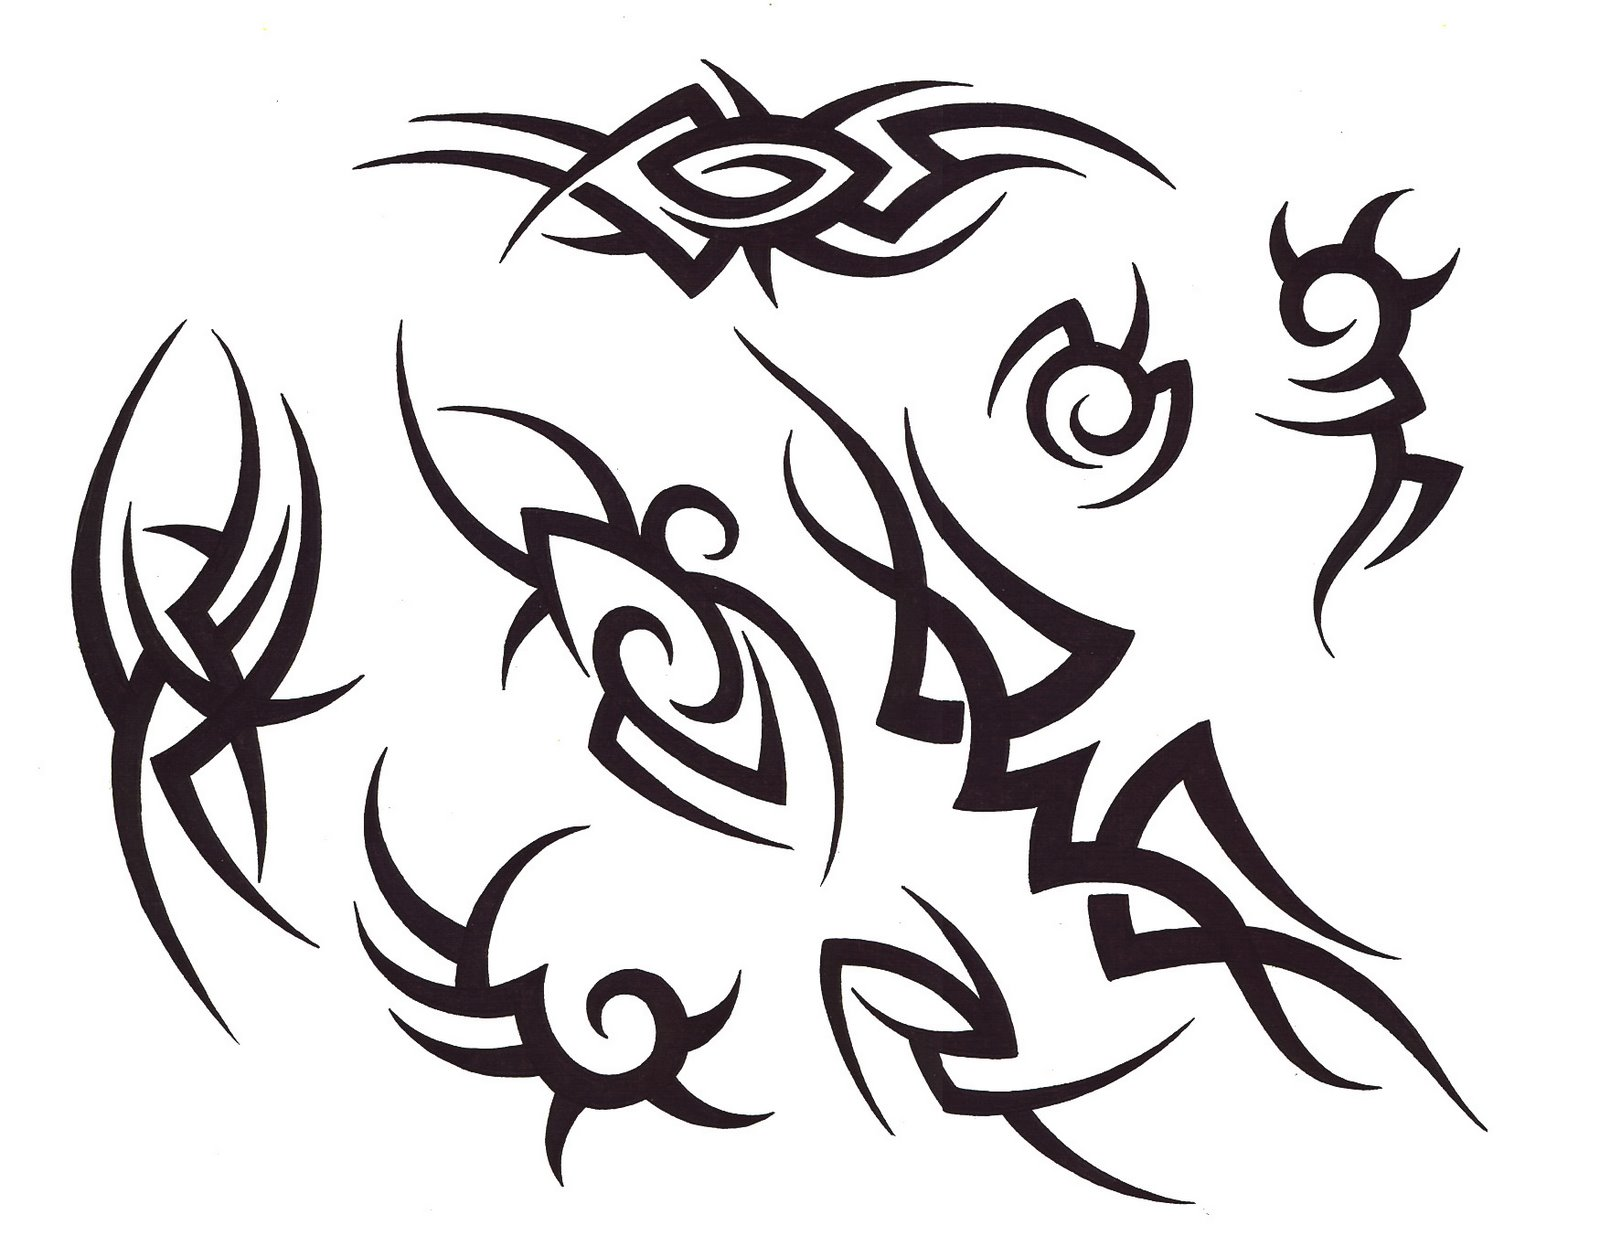 Tattoo designs 2013 tribal tattoo design for Free tattoo design